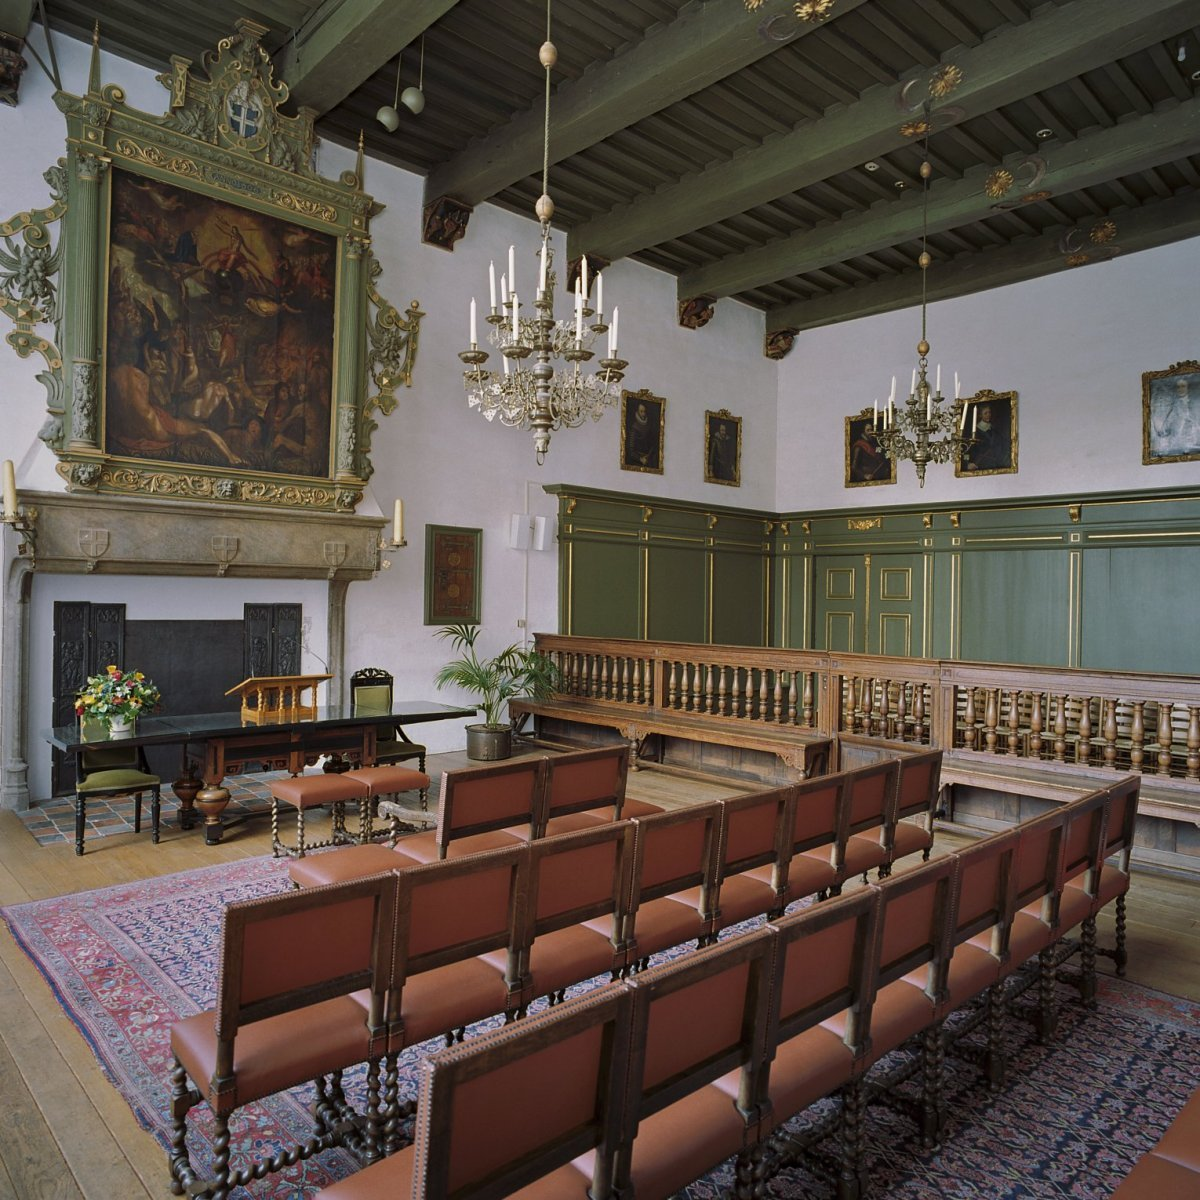 https://upload.wikimedia.org/wikipedia/commons/9/9d/Interieur%2C_overzicht_Schepenzaal_-_Zwolle_-_20364856_-_RCE.jpg